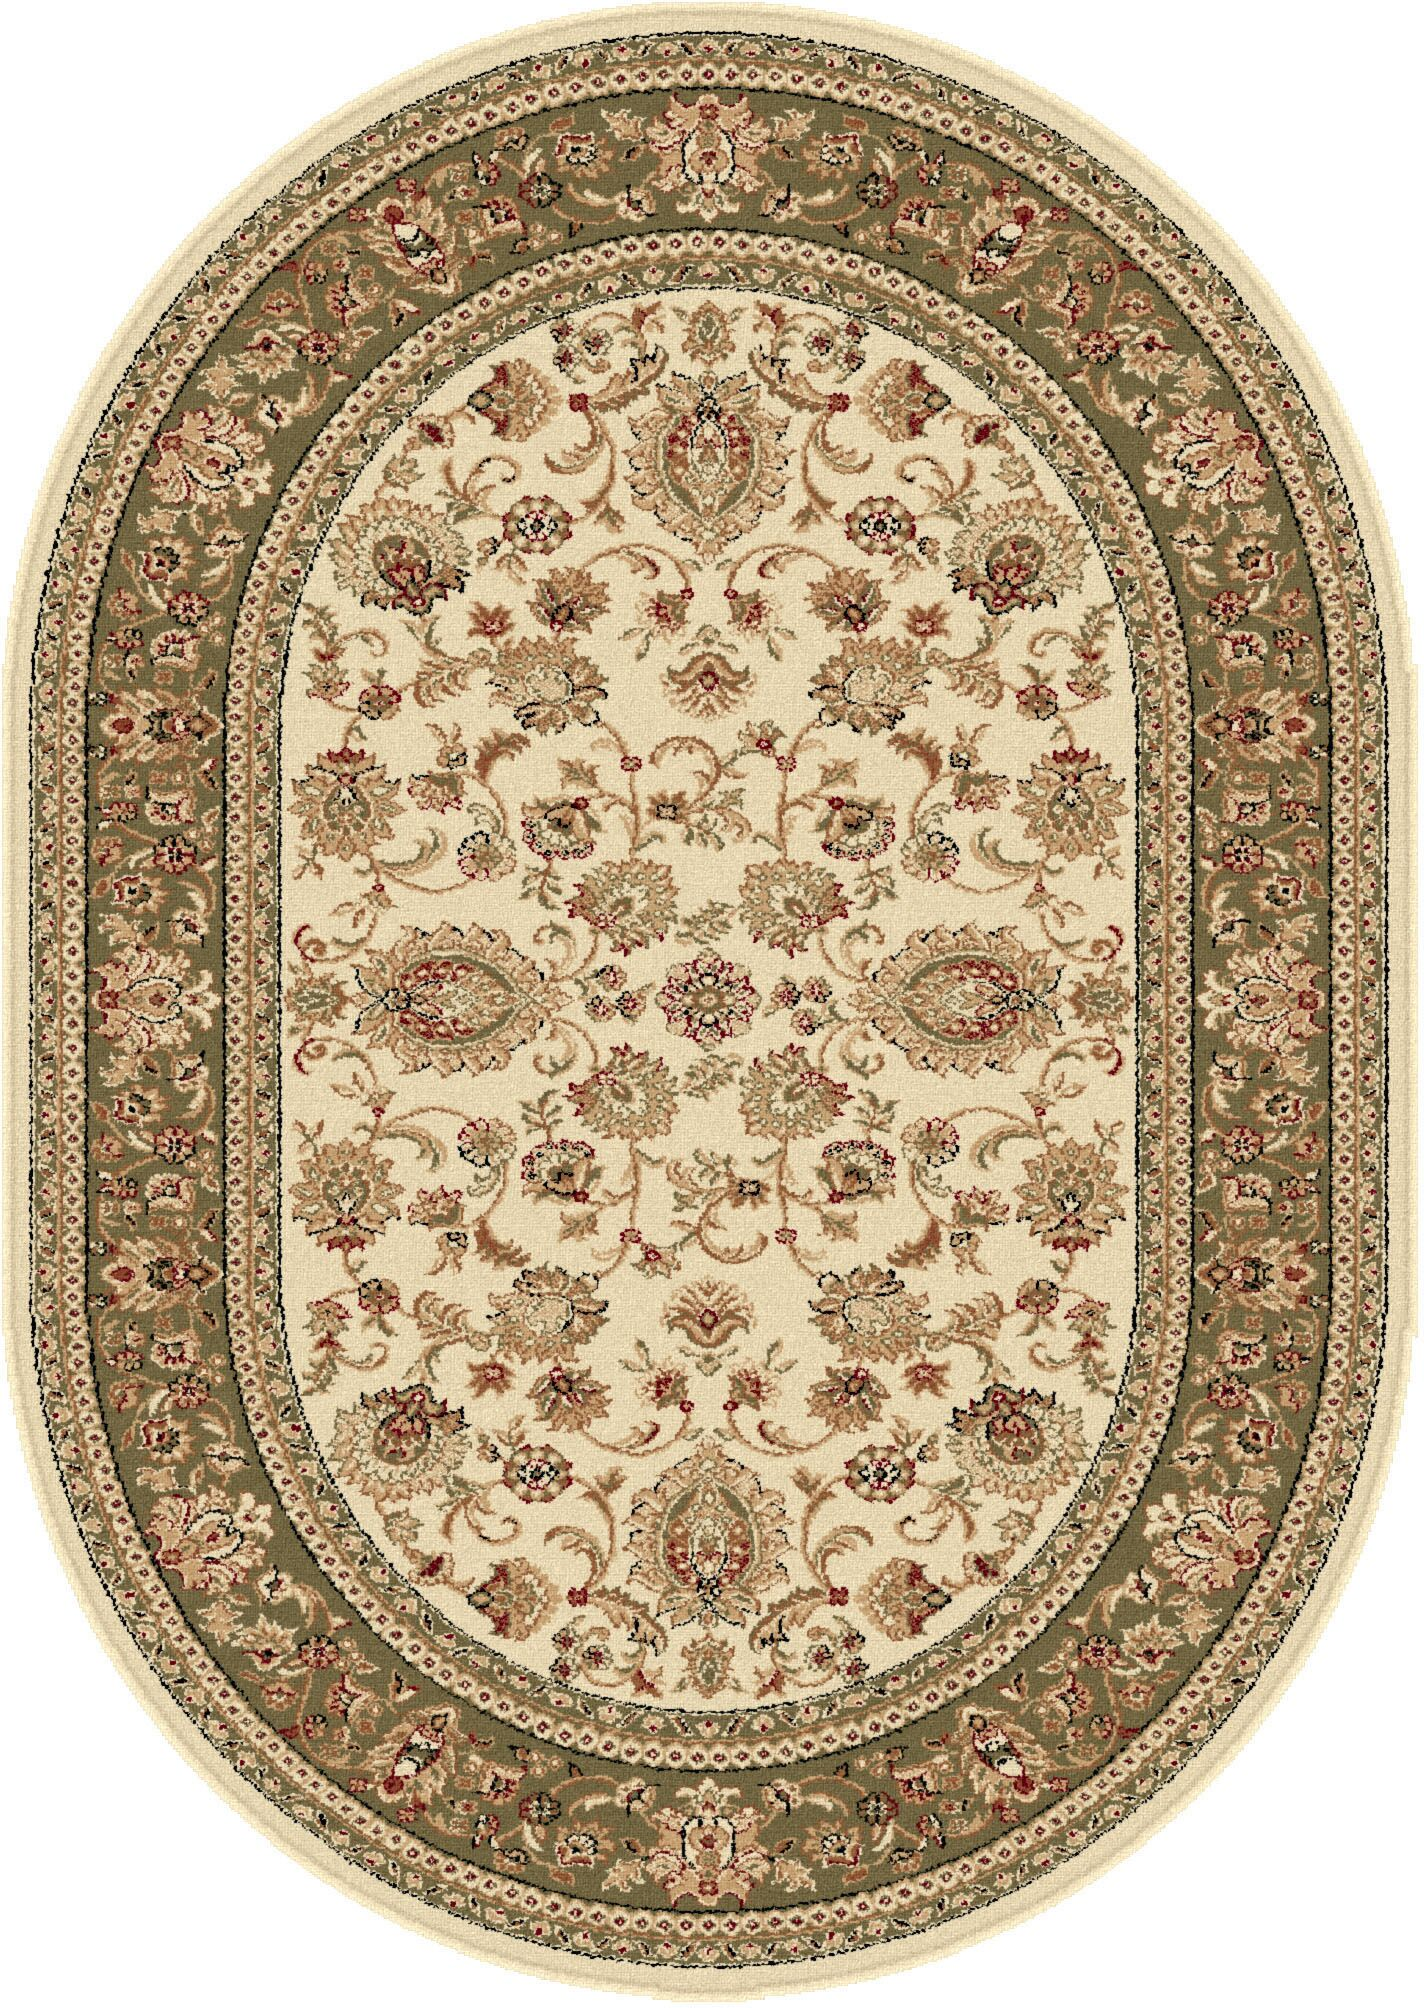 Clarence Beige Area Rug Rug Size: 6'7'' x 9'6'' Oval